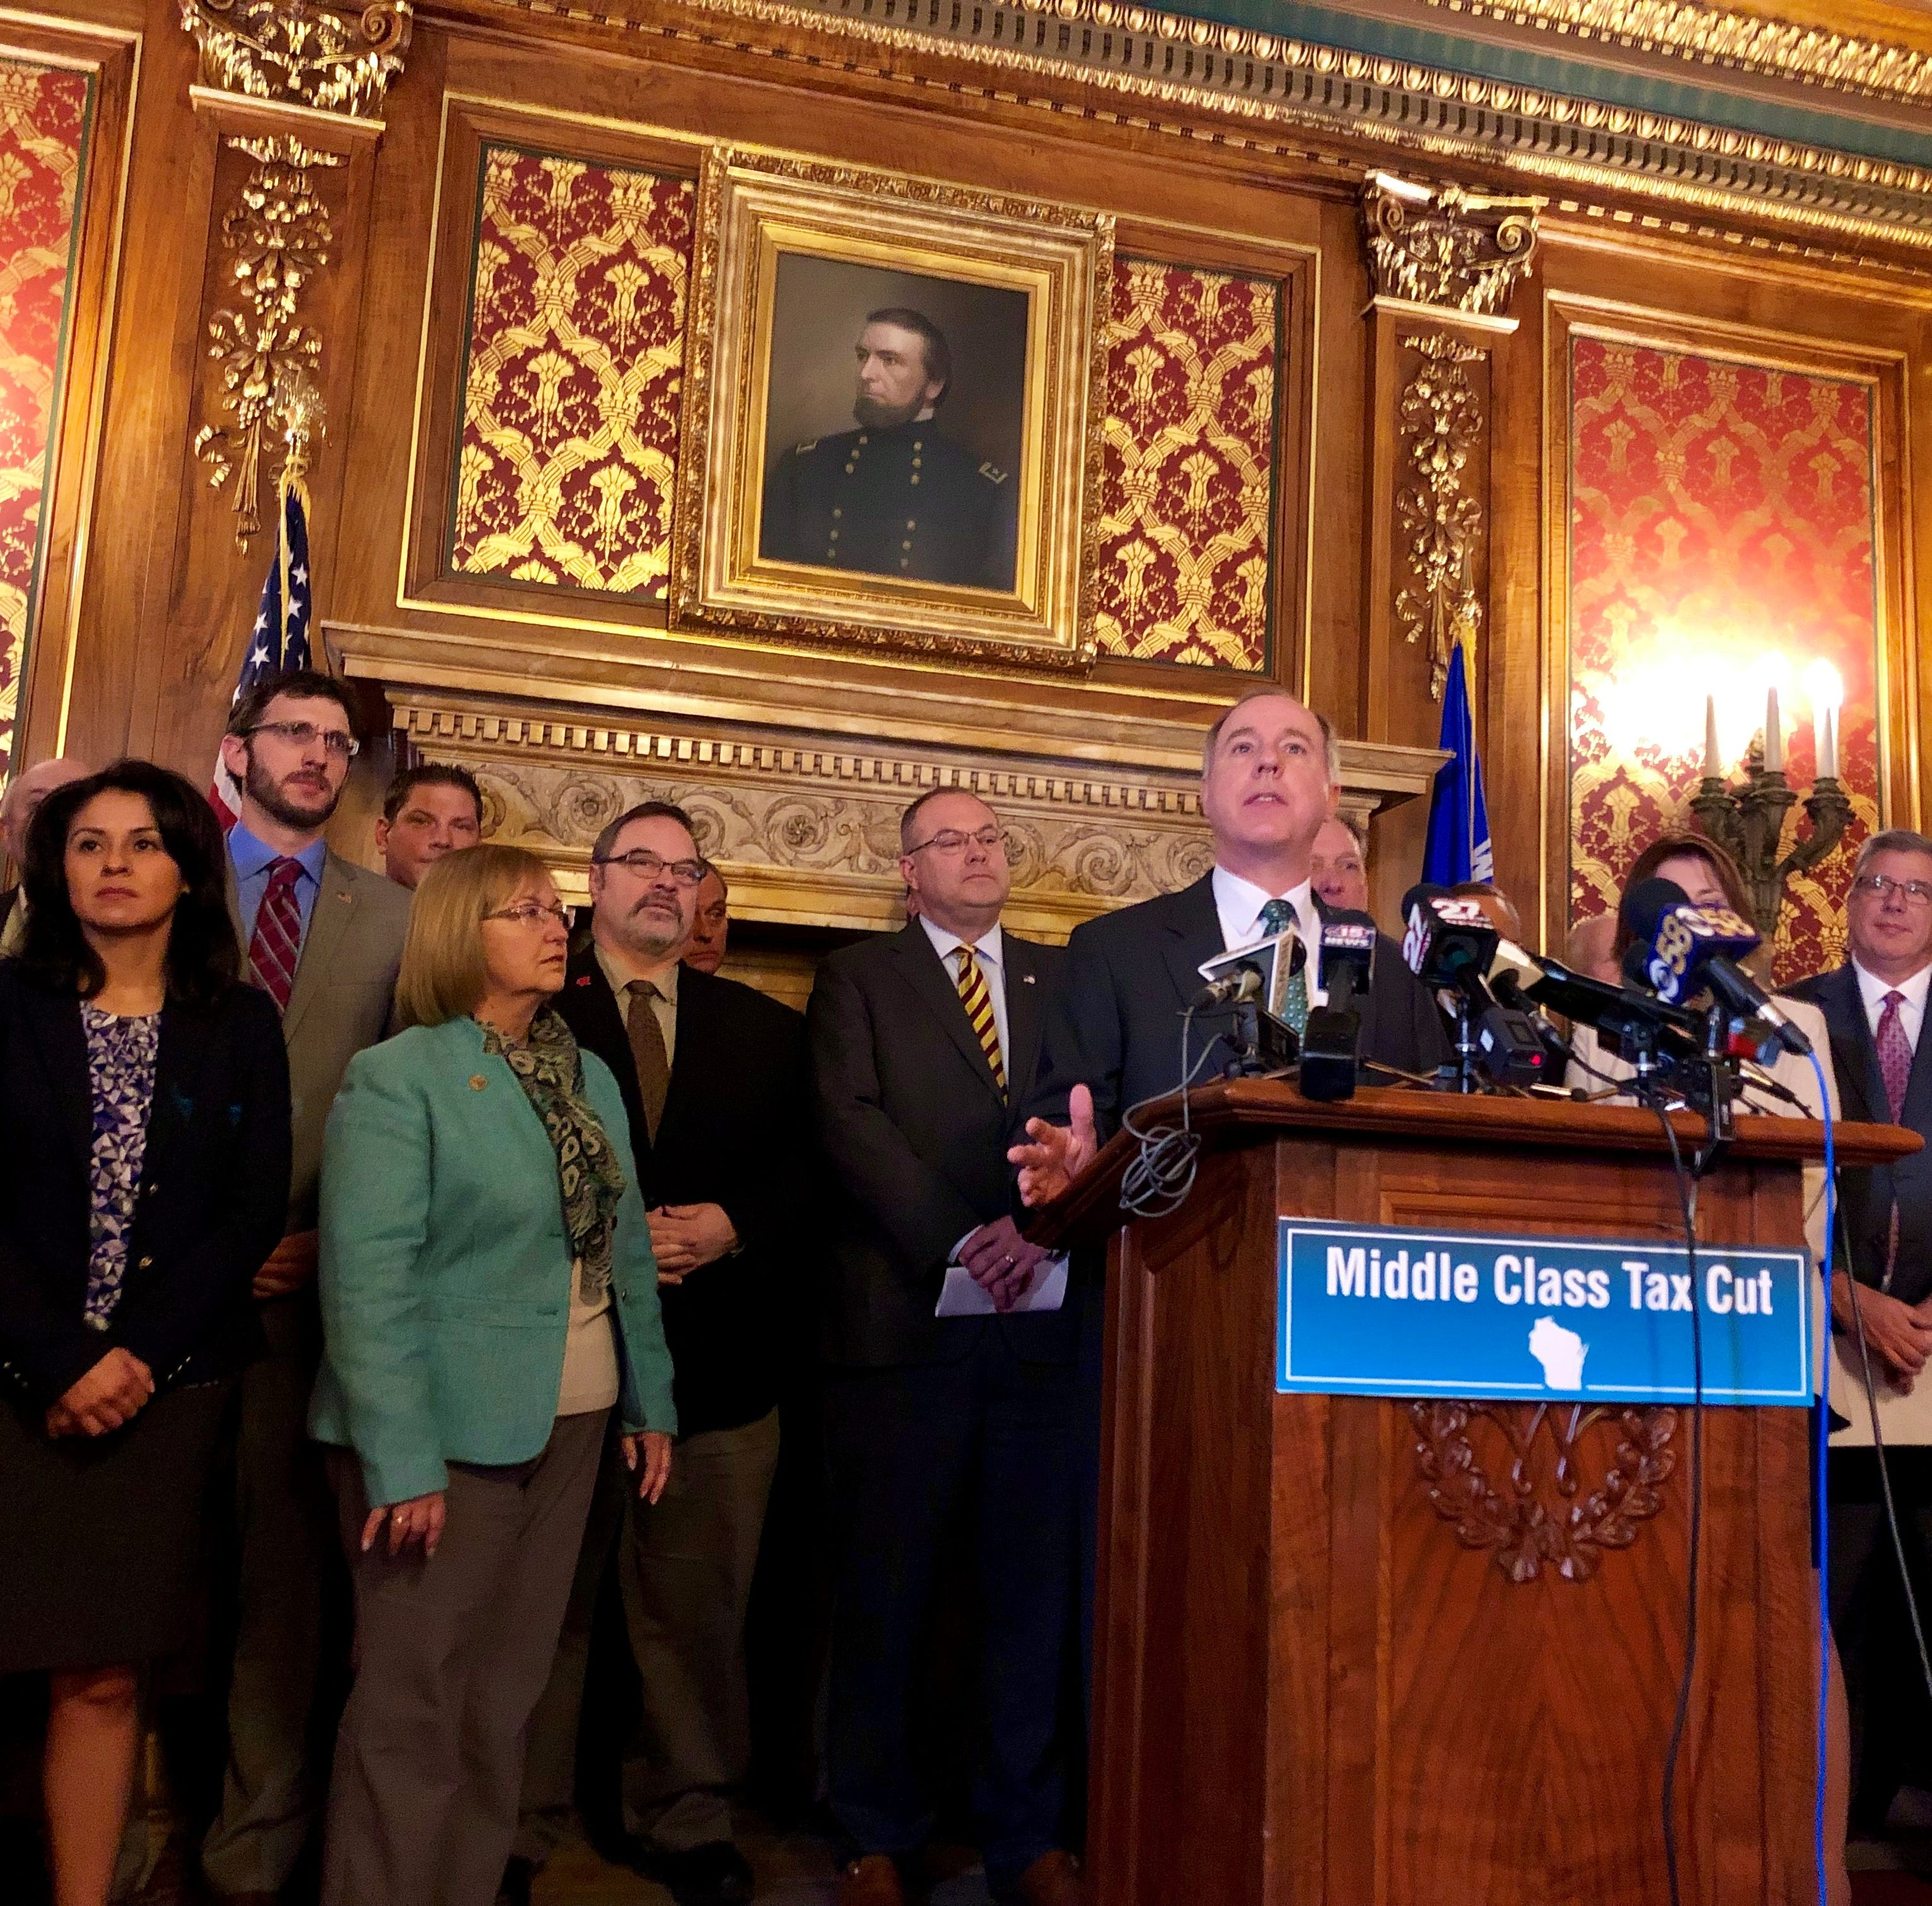 Tony Evers and Republican lawmakers battle over taxes, health coverage